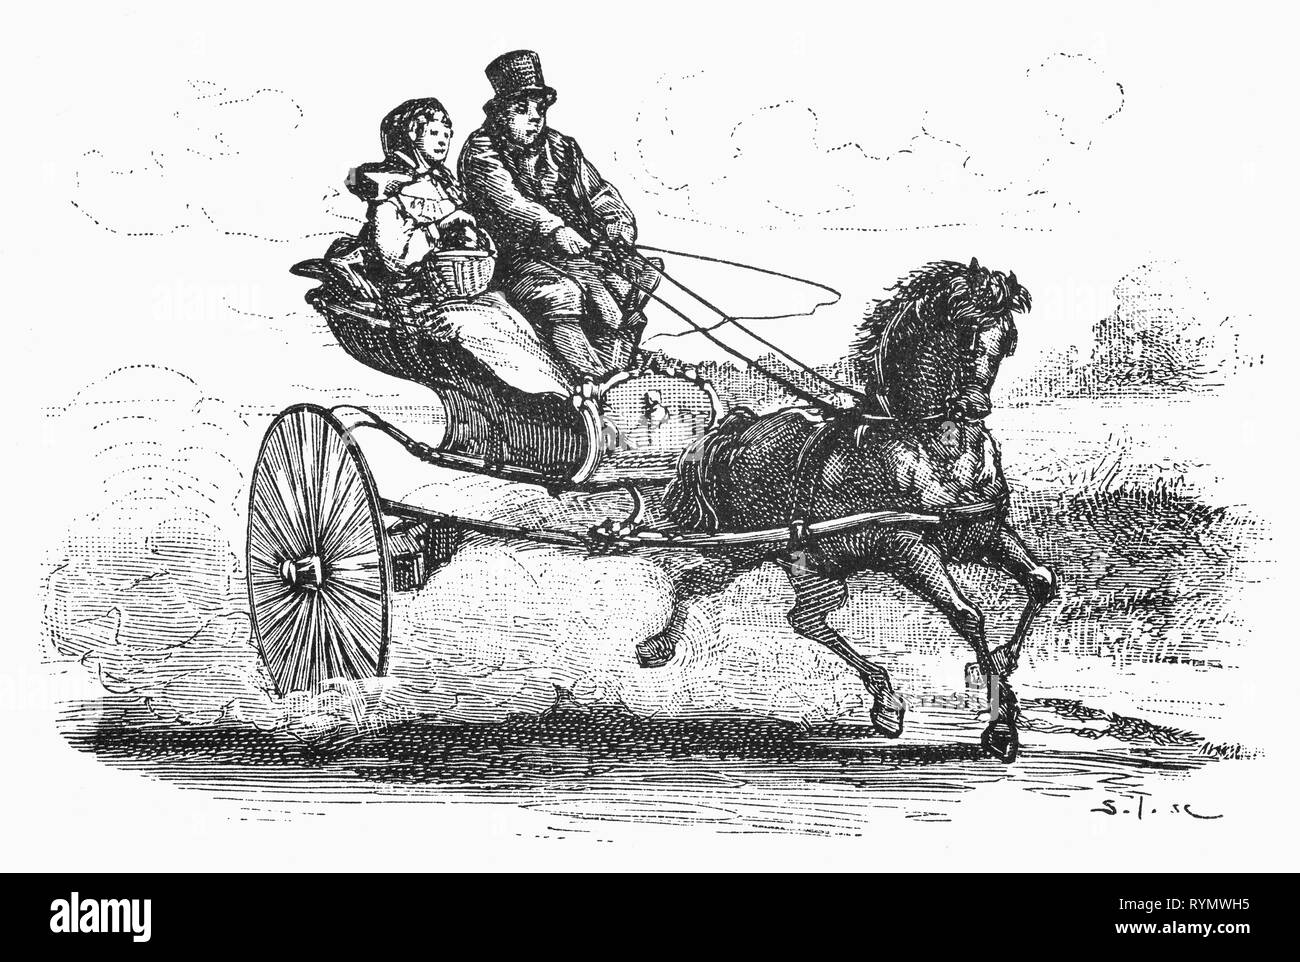 Riding to market in their pony and trap is the Noordholland  farmer and his wife.From the Camera Obscura, a 19th Century collection of Dutch humorous-realistic essays, stories and sketches in which Hildebrand, the author, takes an ironic look at the behavior of the 'well-to-do', finding  them bourgeois and without a good word for them. - Stock Image